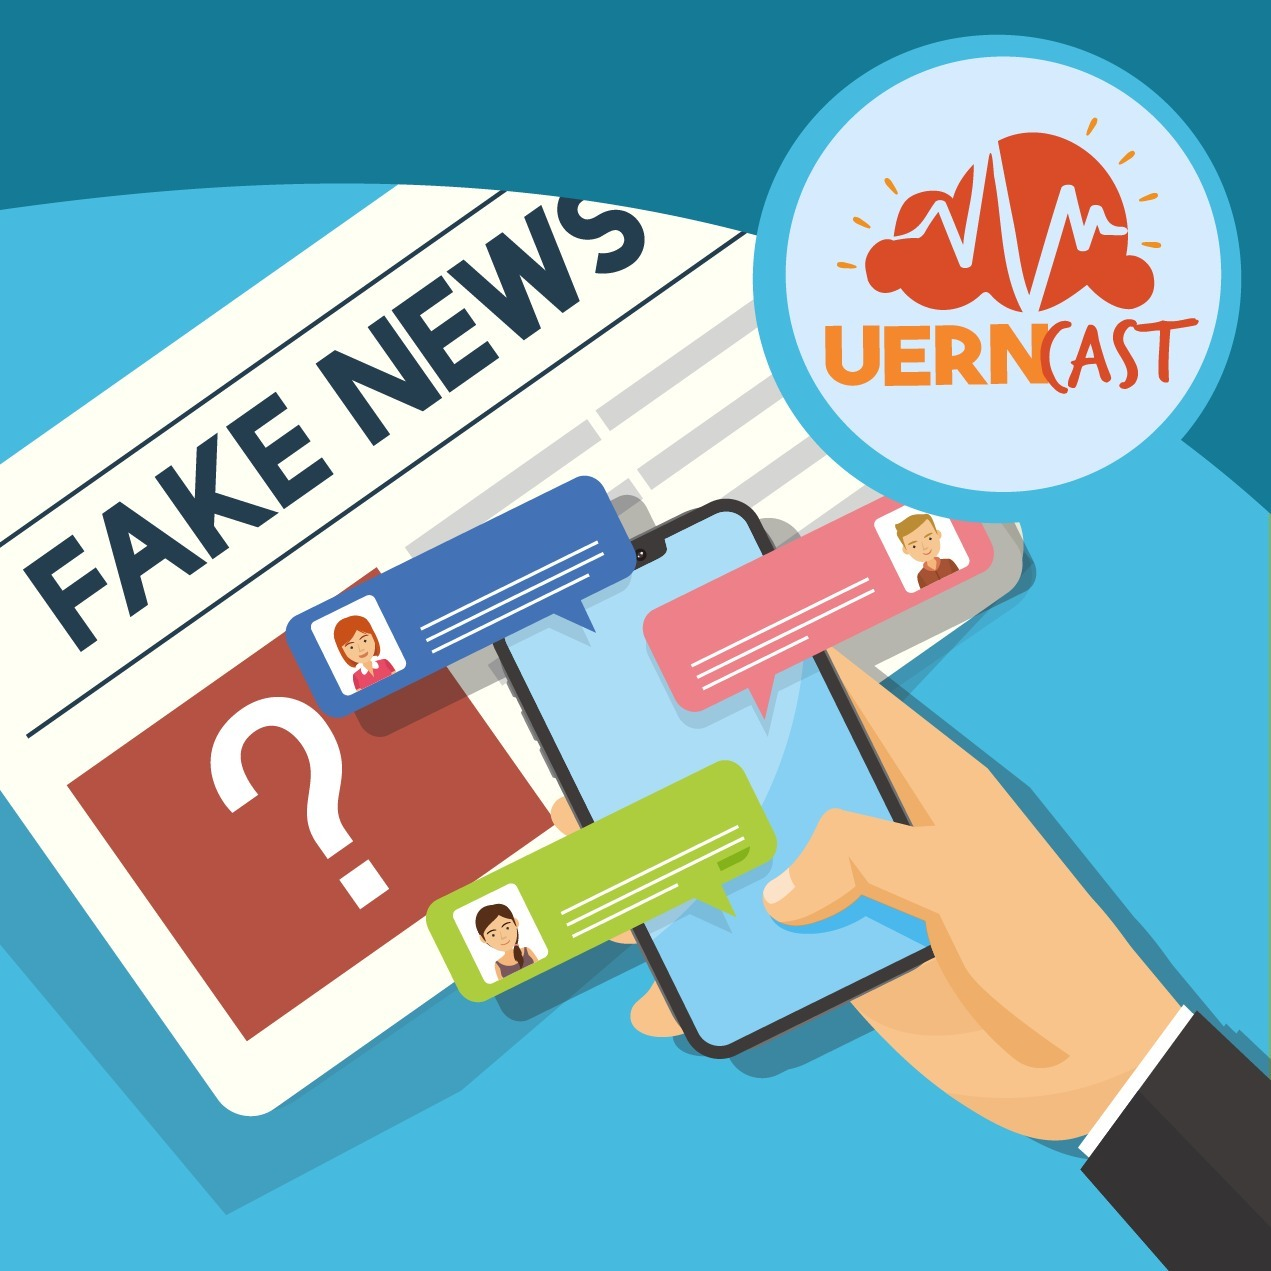 Identificando e combatendo as fake news